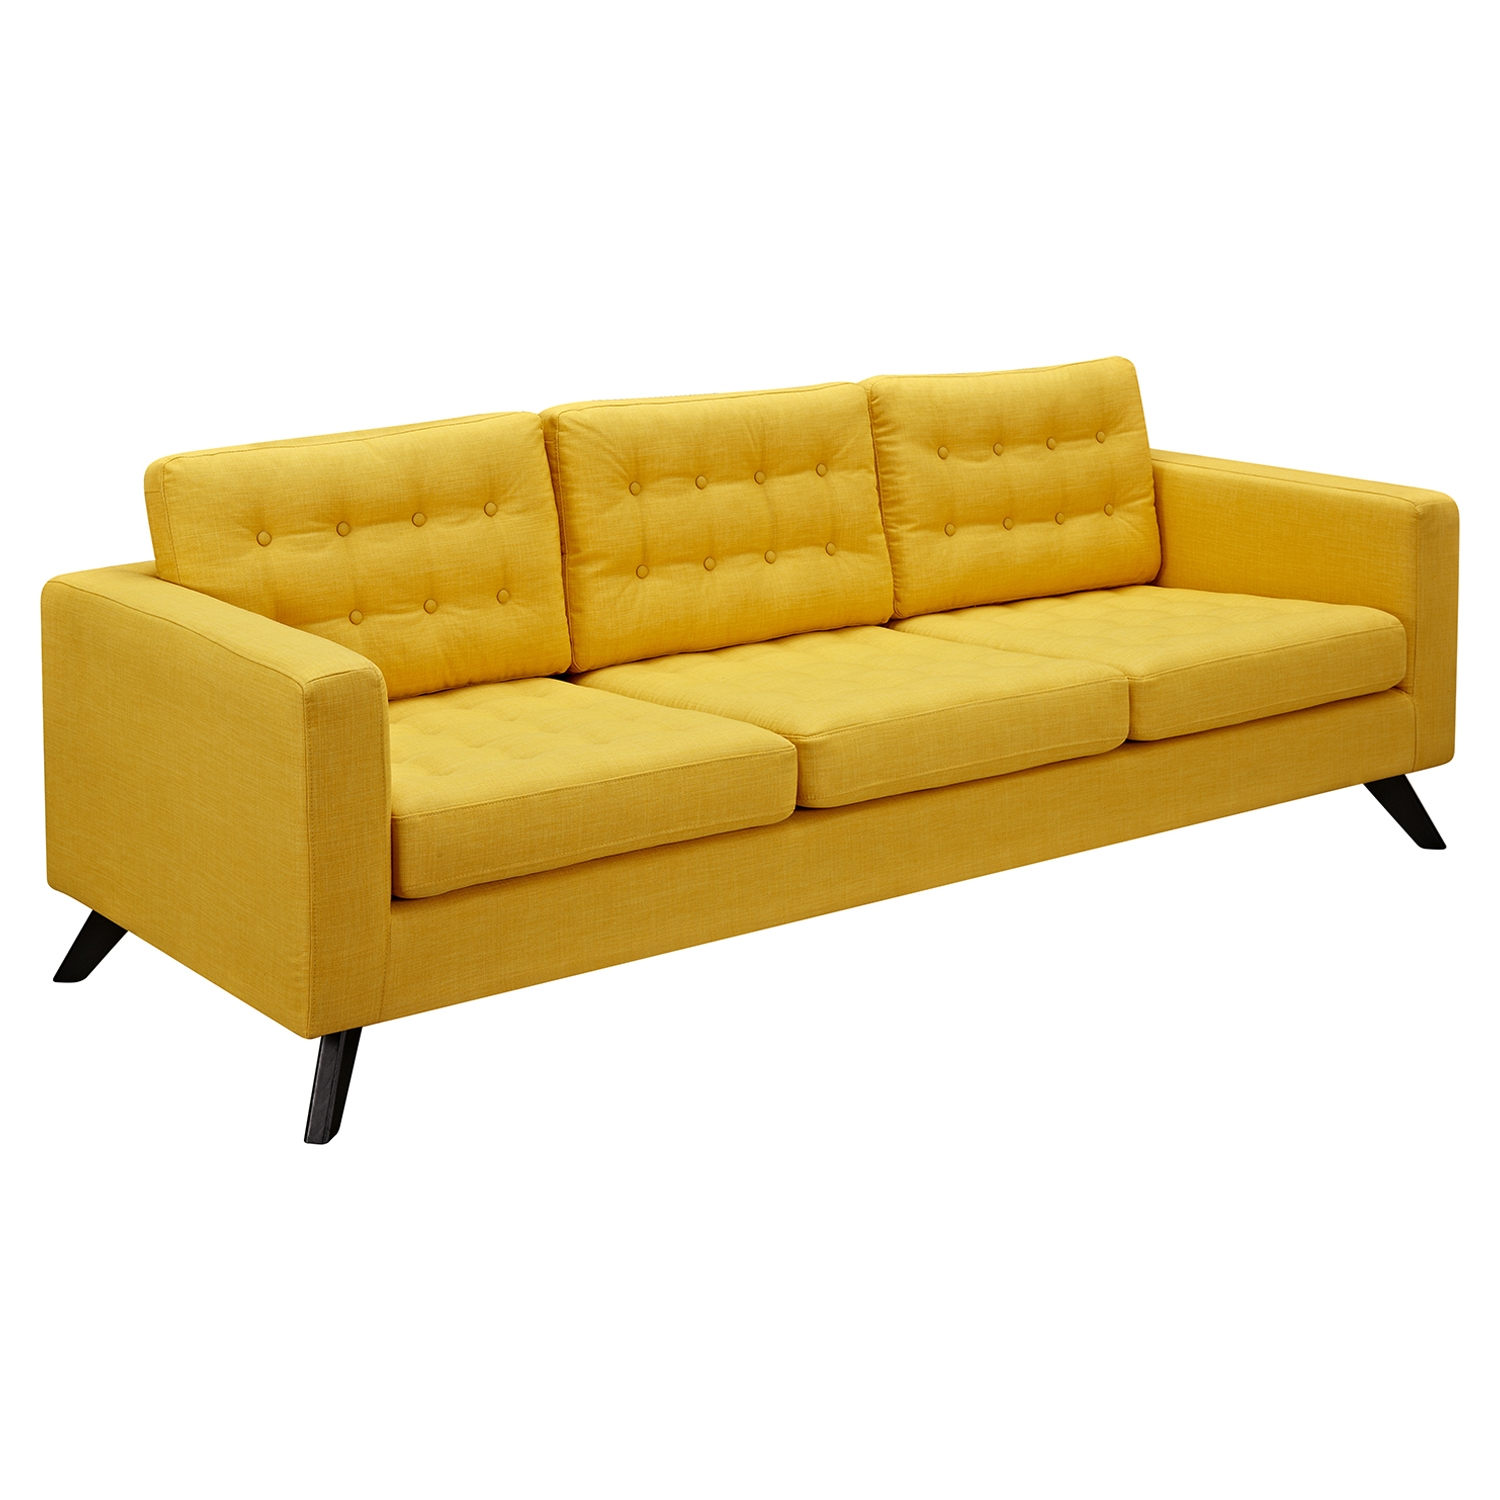 Mina Sofa - Papaya Yellow, Tufted - NYEK-224449